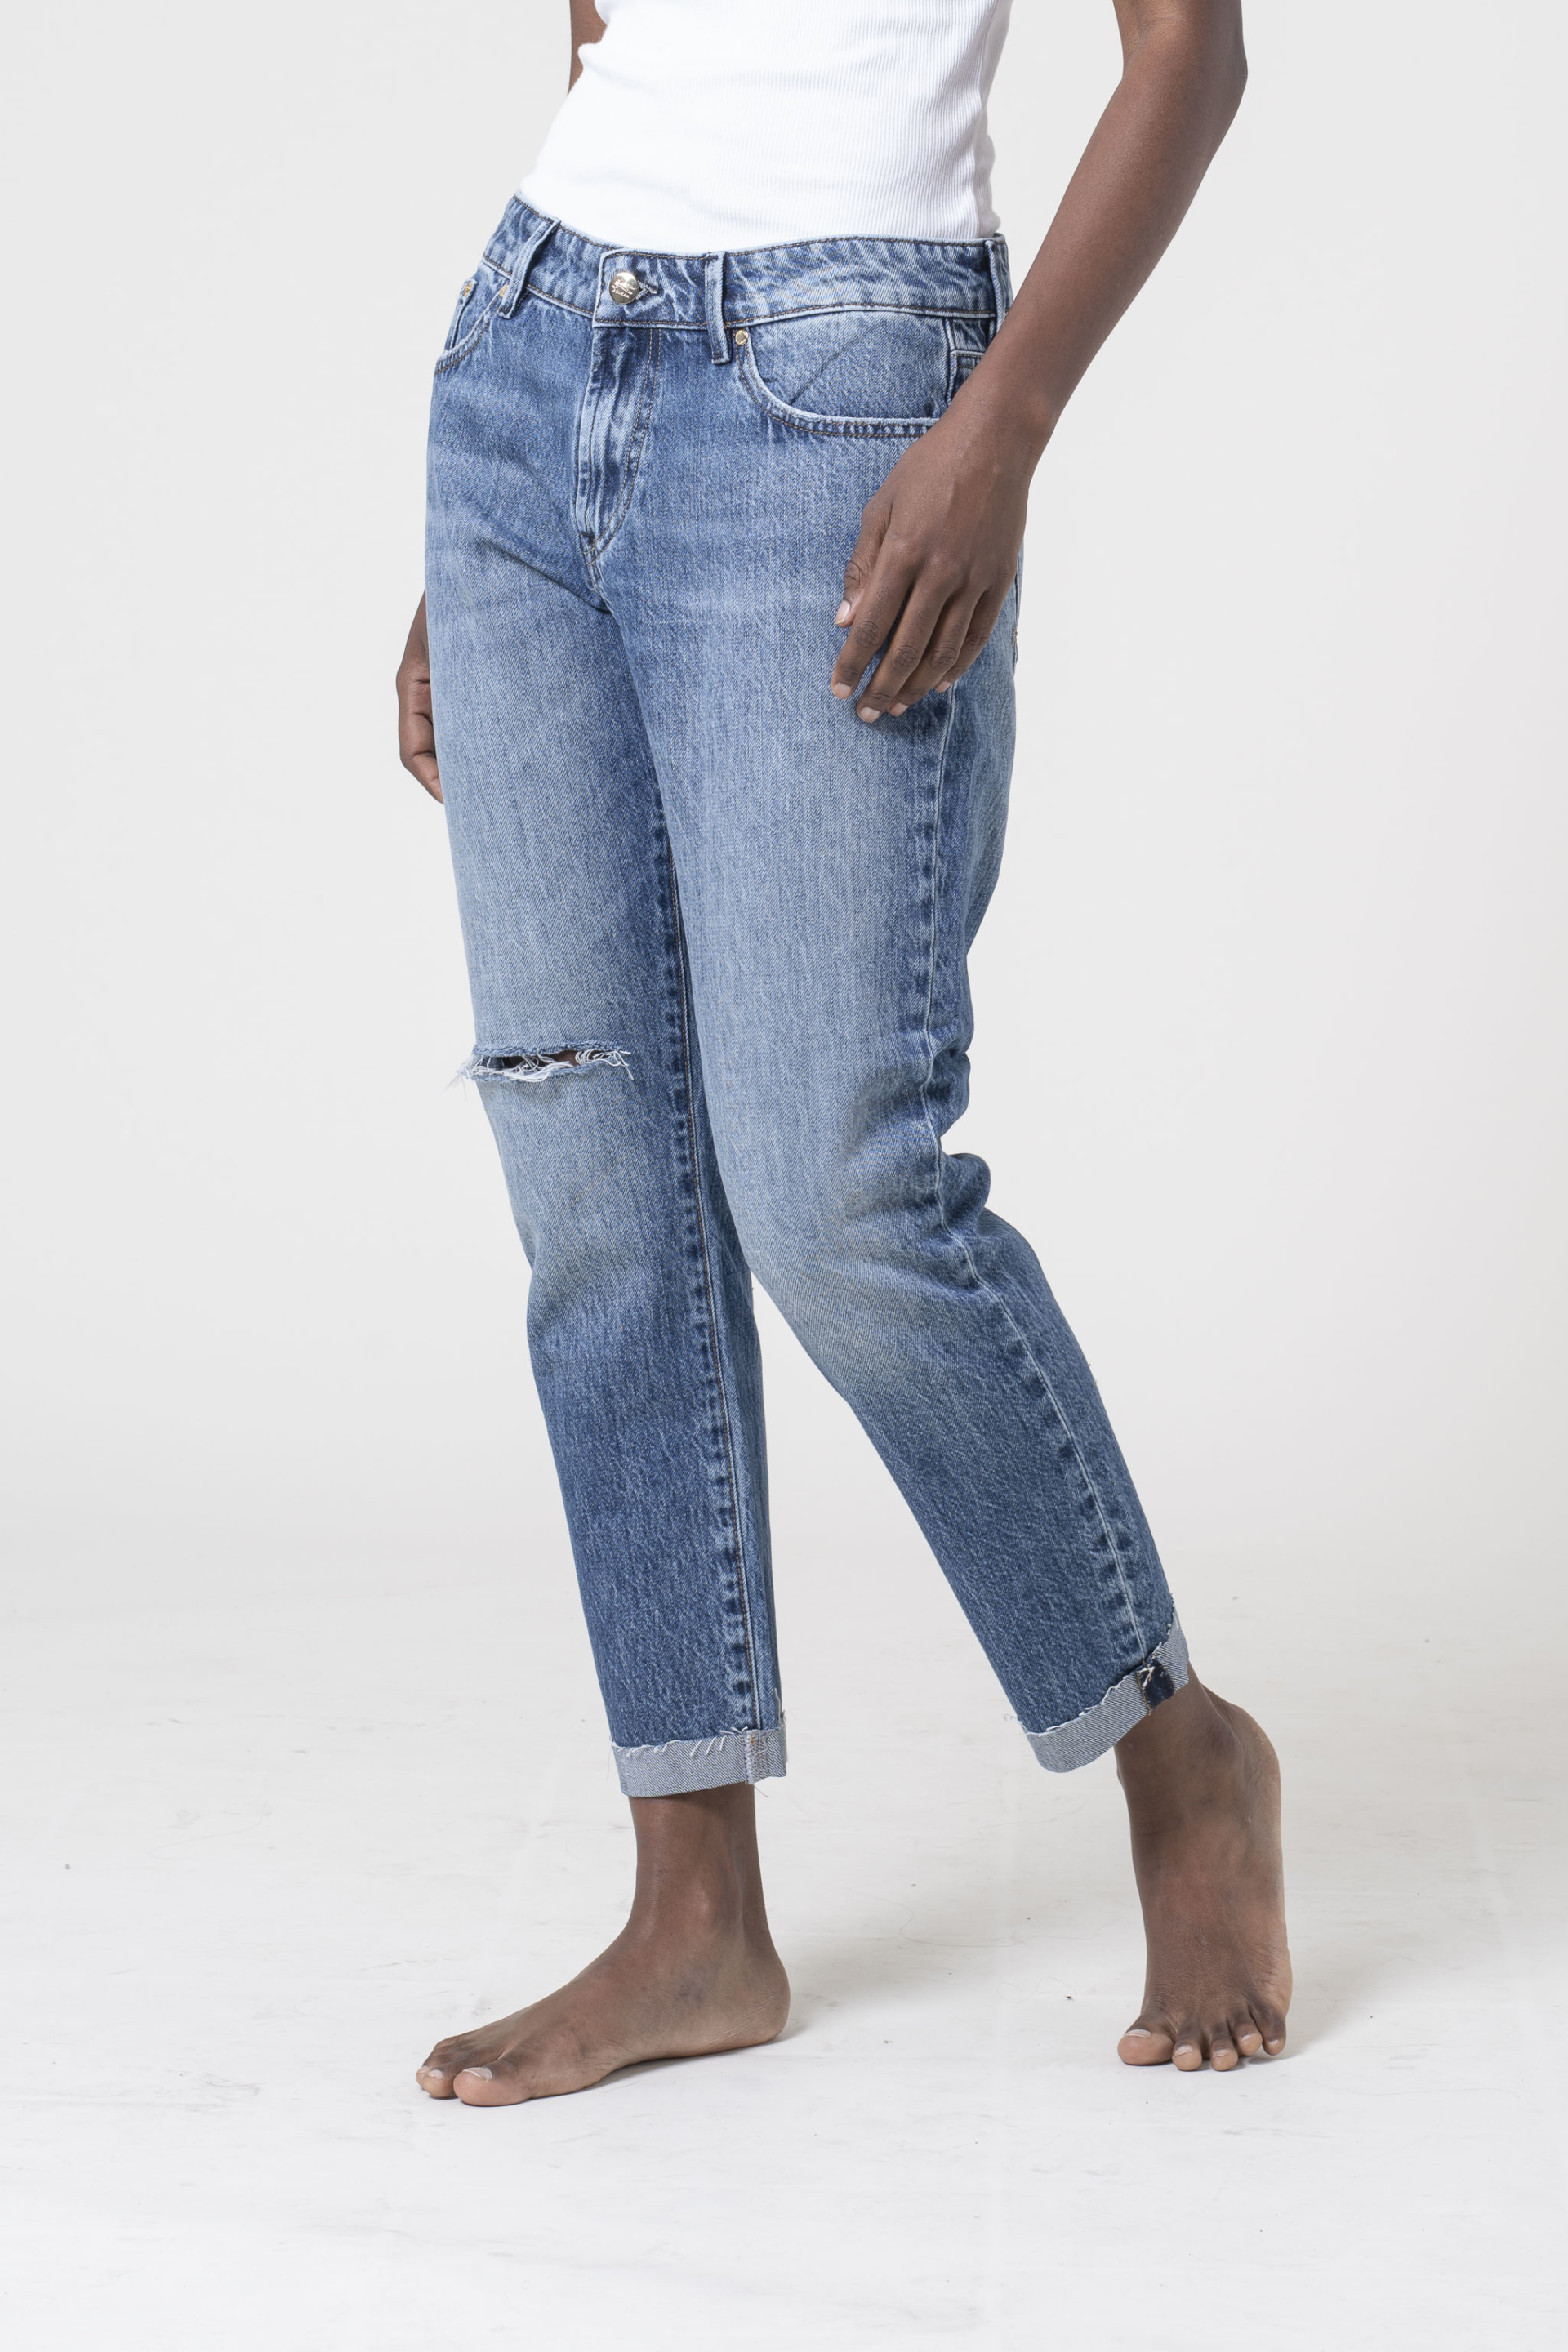 denim jeans Monroe GRCD regular Denham candiani denim store